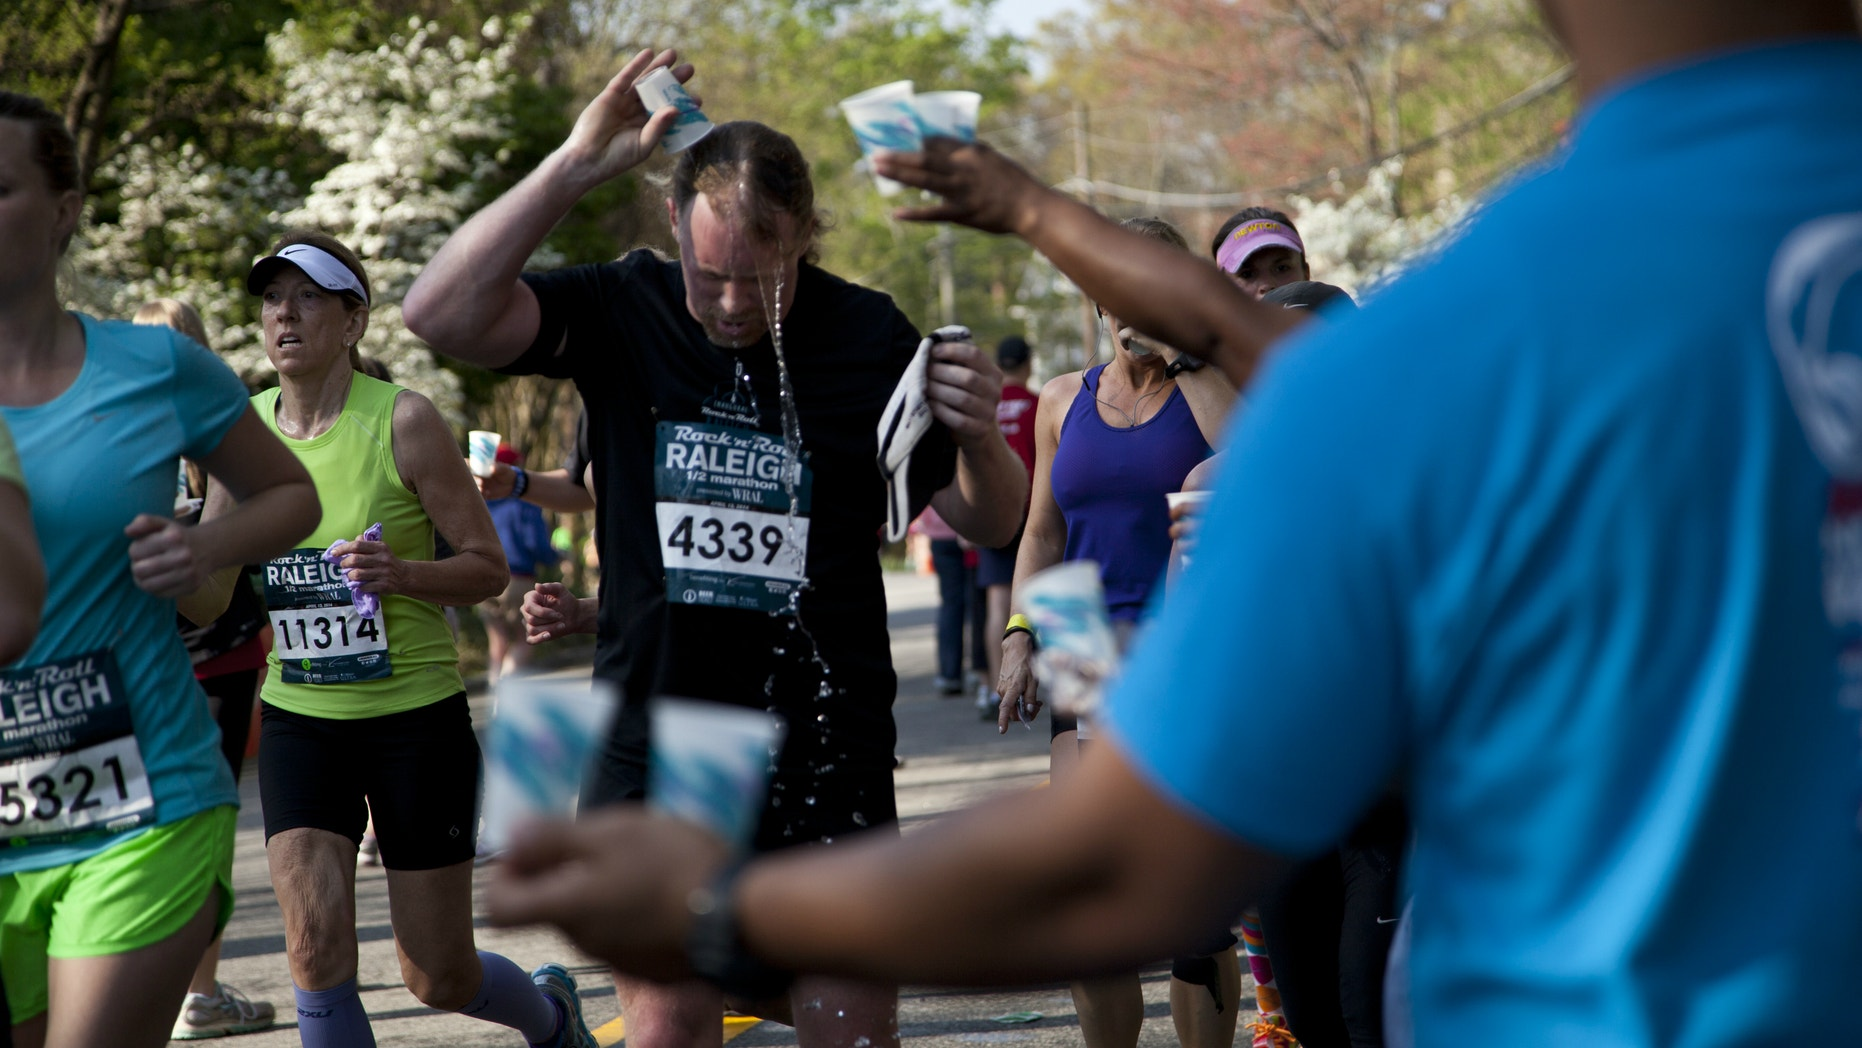 Fred Henninger Jr. pours water over his head at the mile 12 water station in Raleigh, NC during the Raleigh Rock 'n' Roll Marathon & Half Marathon, Sunday, April 13, 2014. Authorities say two runners have died near the finish line of the half marathon.